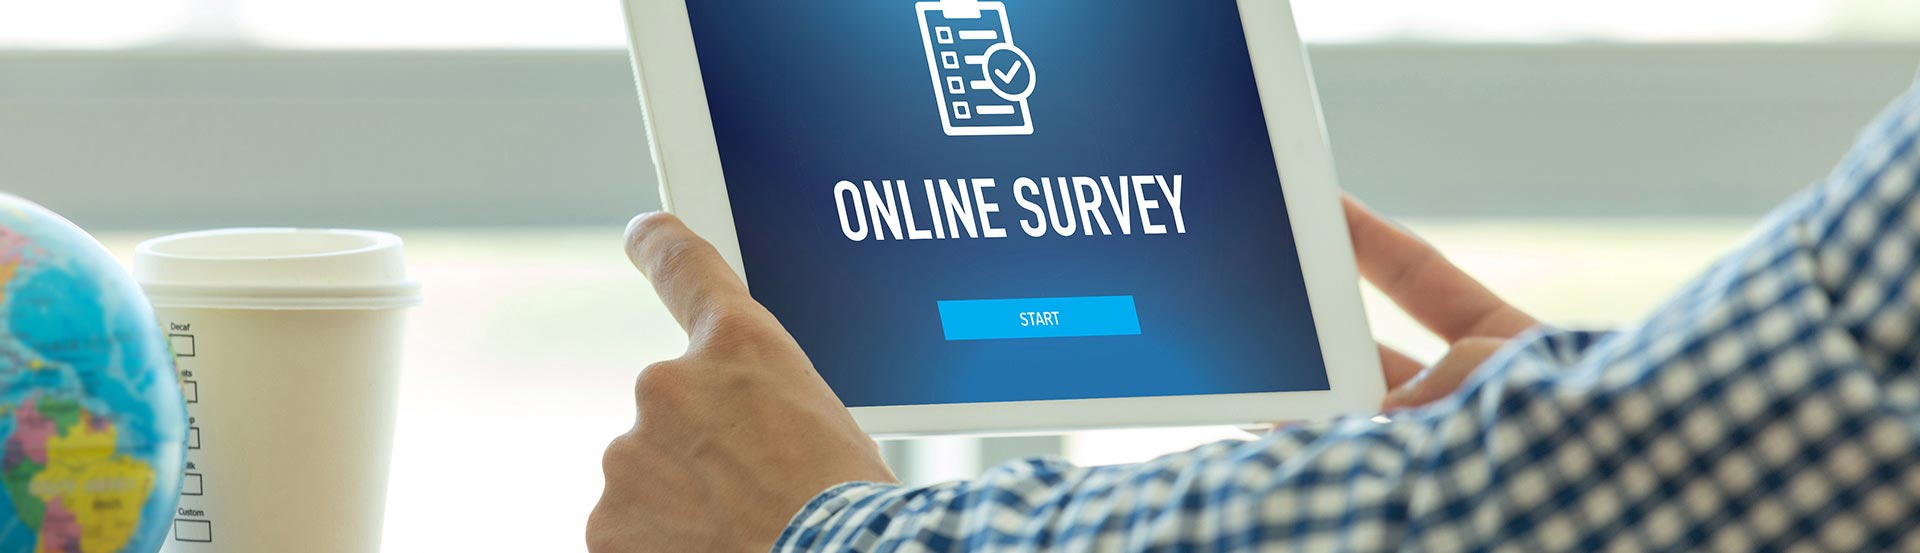 Legal aspects of the survey